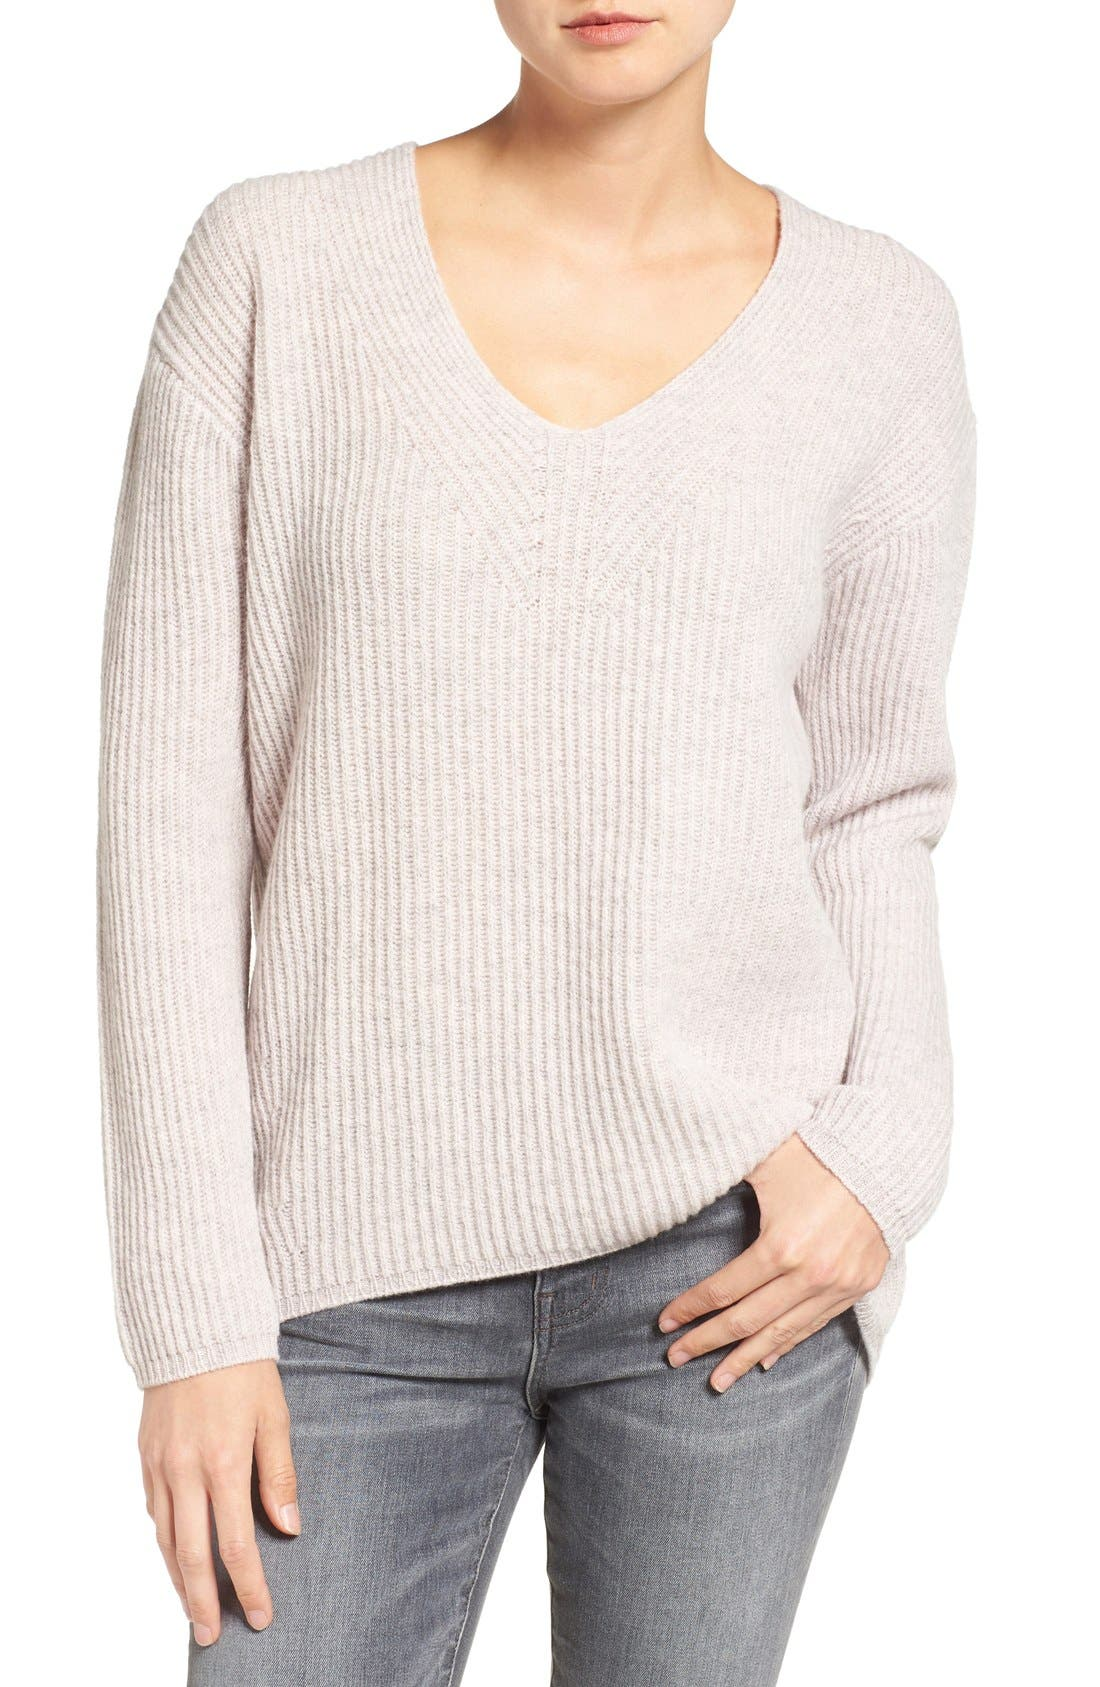 Woodside Pullover Sweater,                             Main thumbnail 6, color,